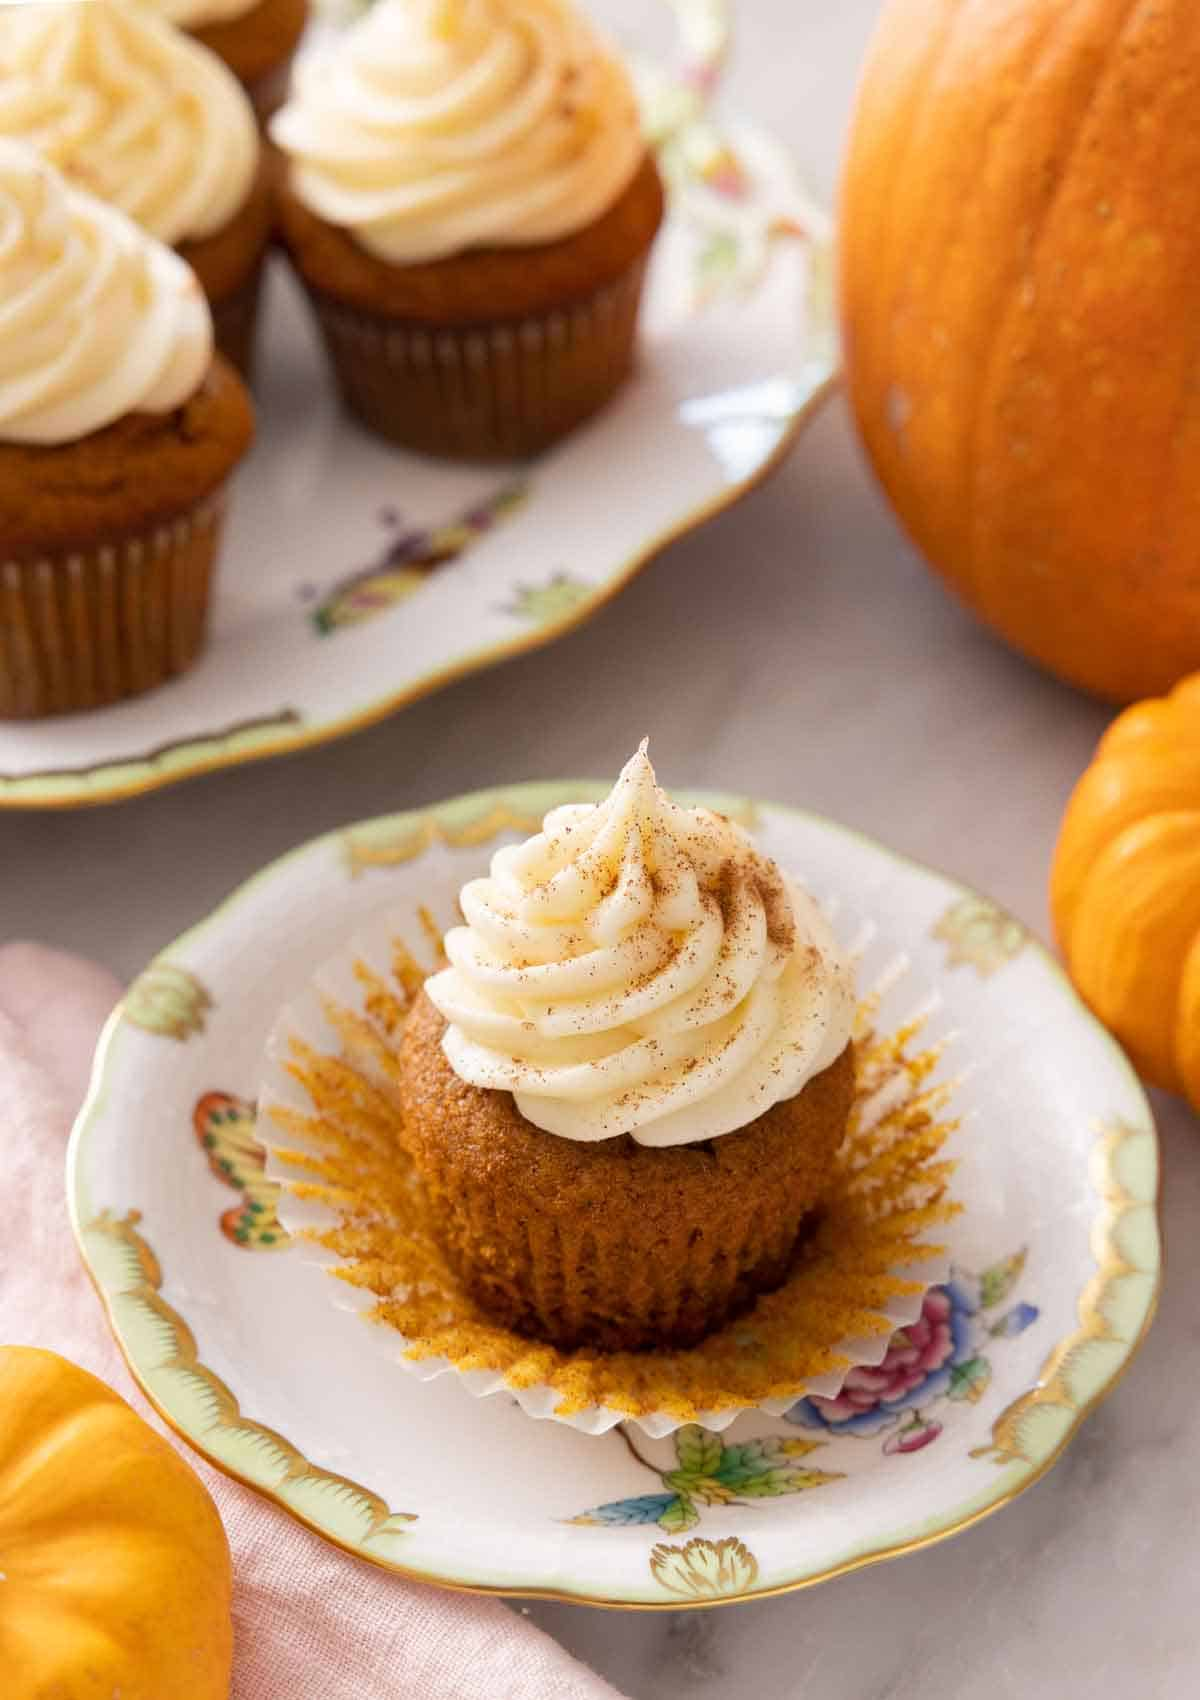 A plate with a pumpkin cupcake with cream cheese frosting on top with the cupcake liner pulled away.